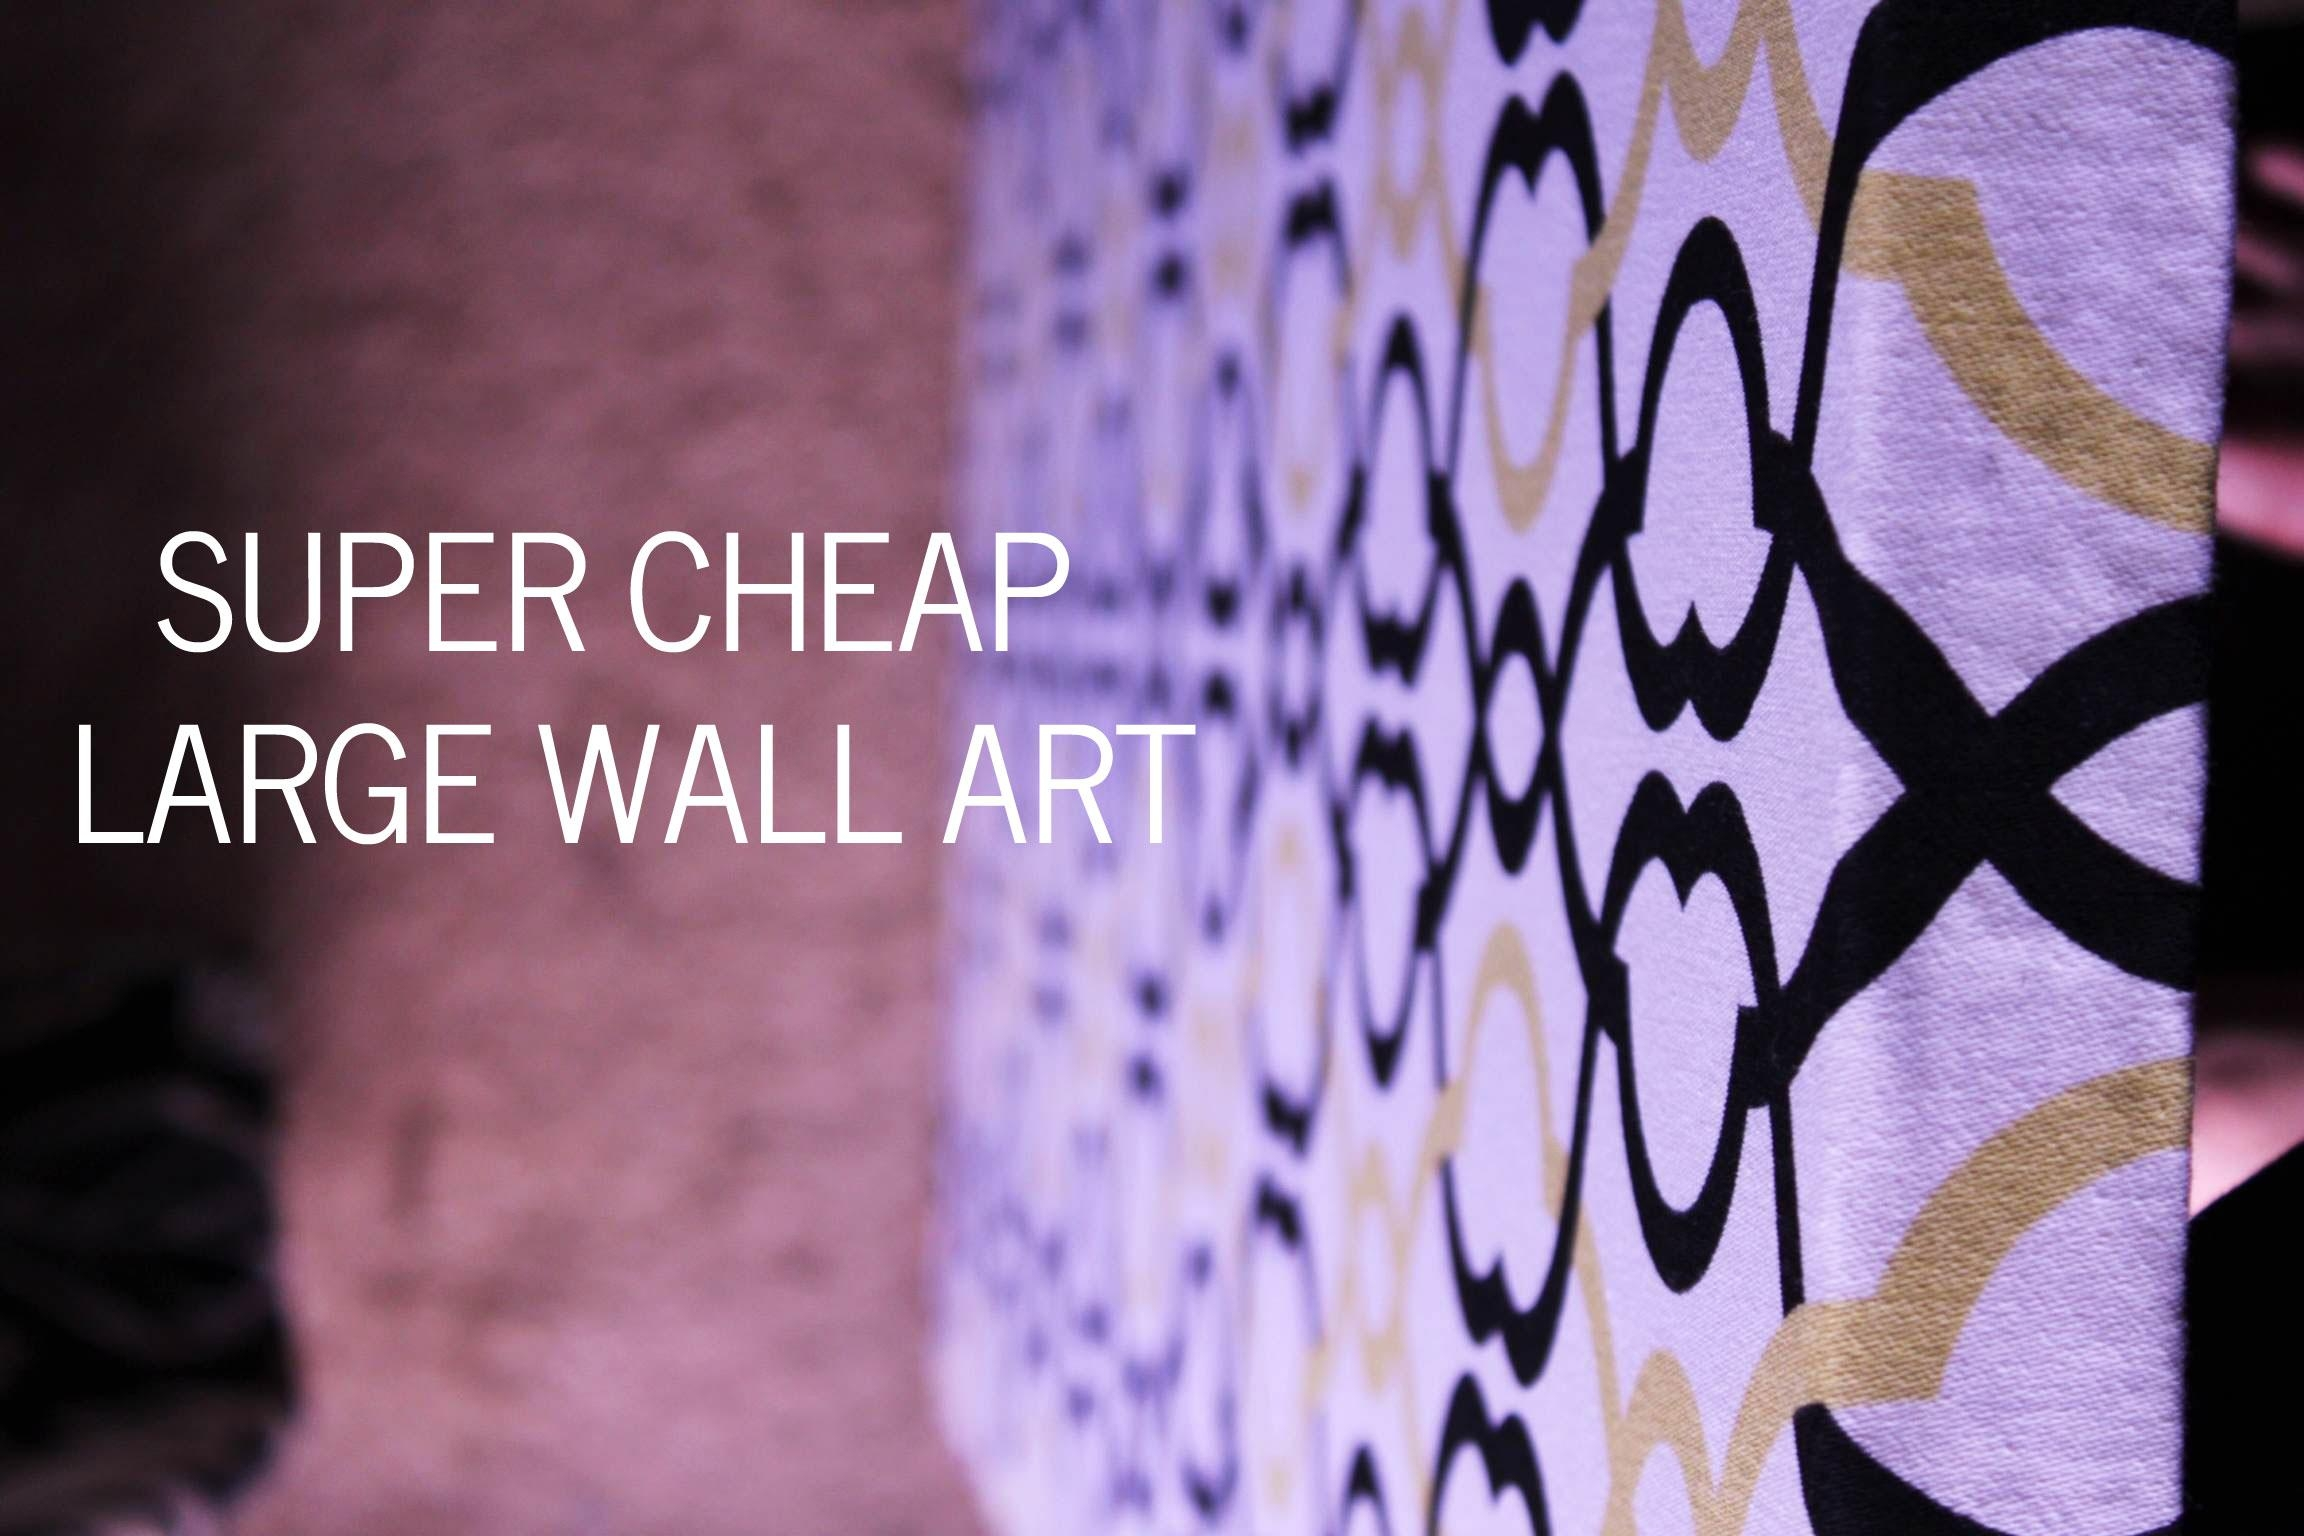 Wall Art Design Ideas: Purple Abstract Cheap Large Wall Art Super With Regard To Big Cheap Wall Art (Image 17 of 20)